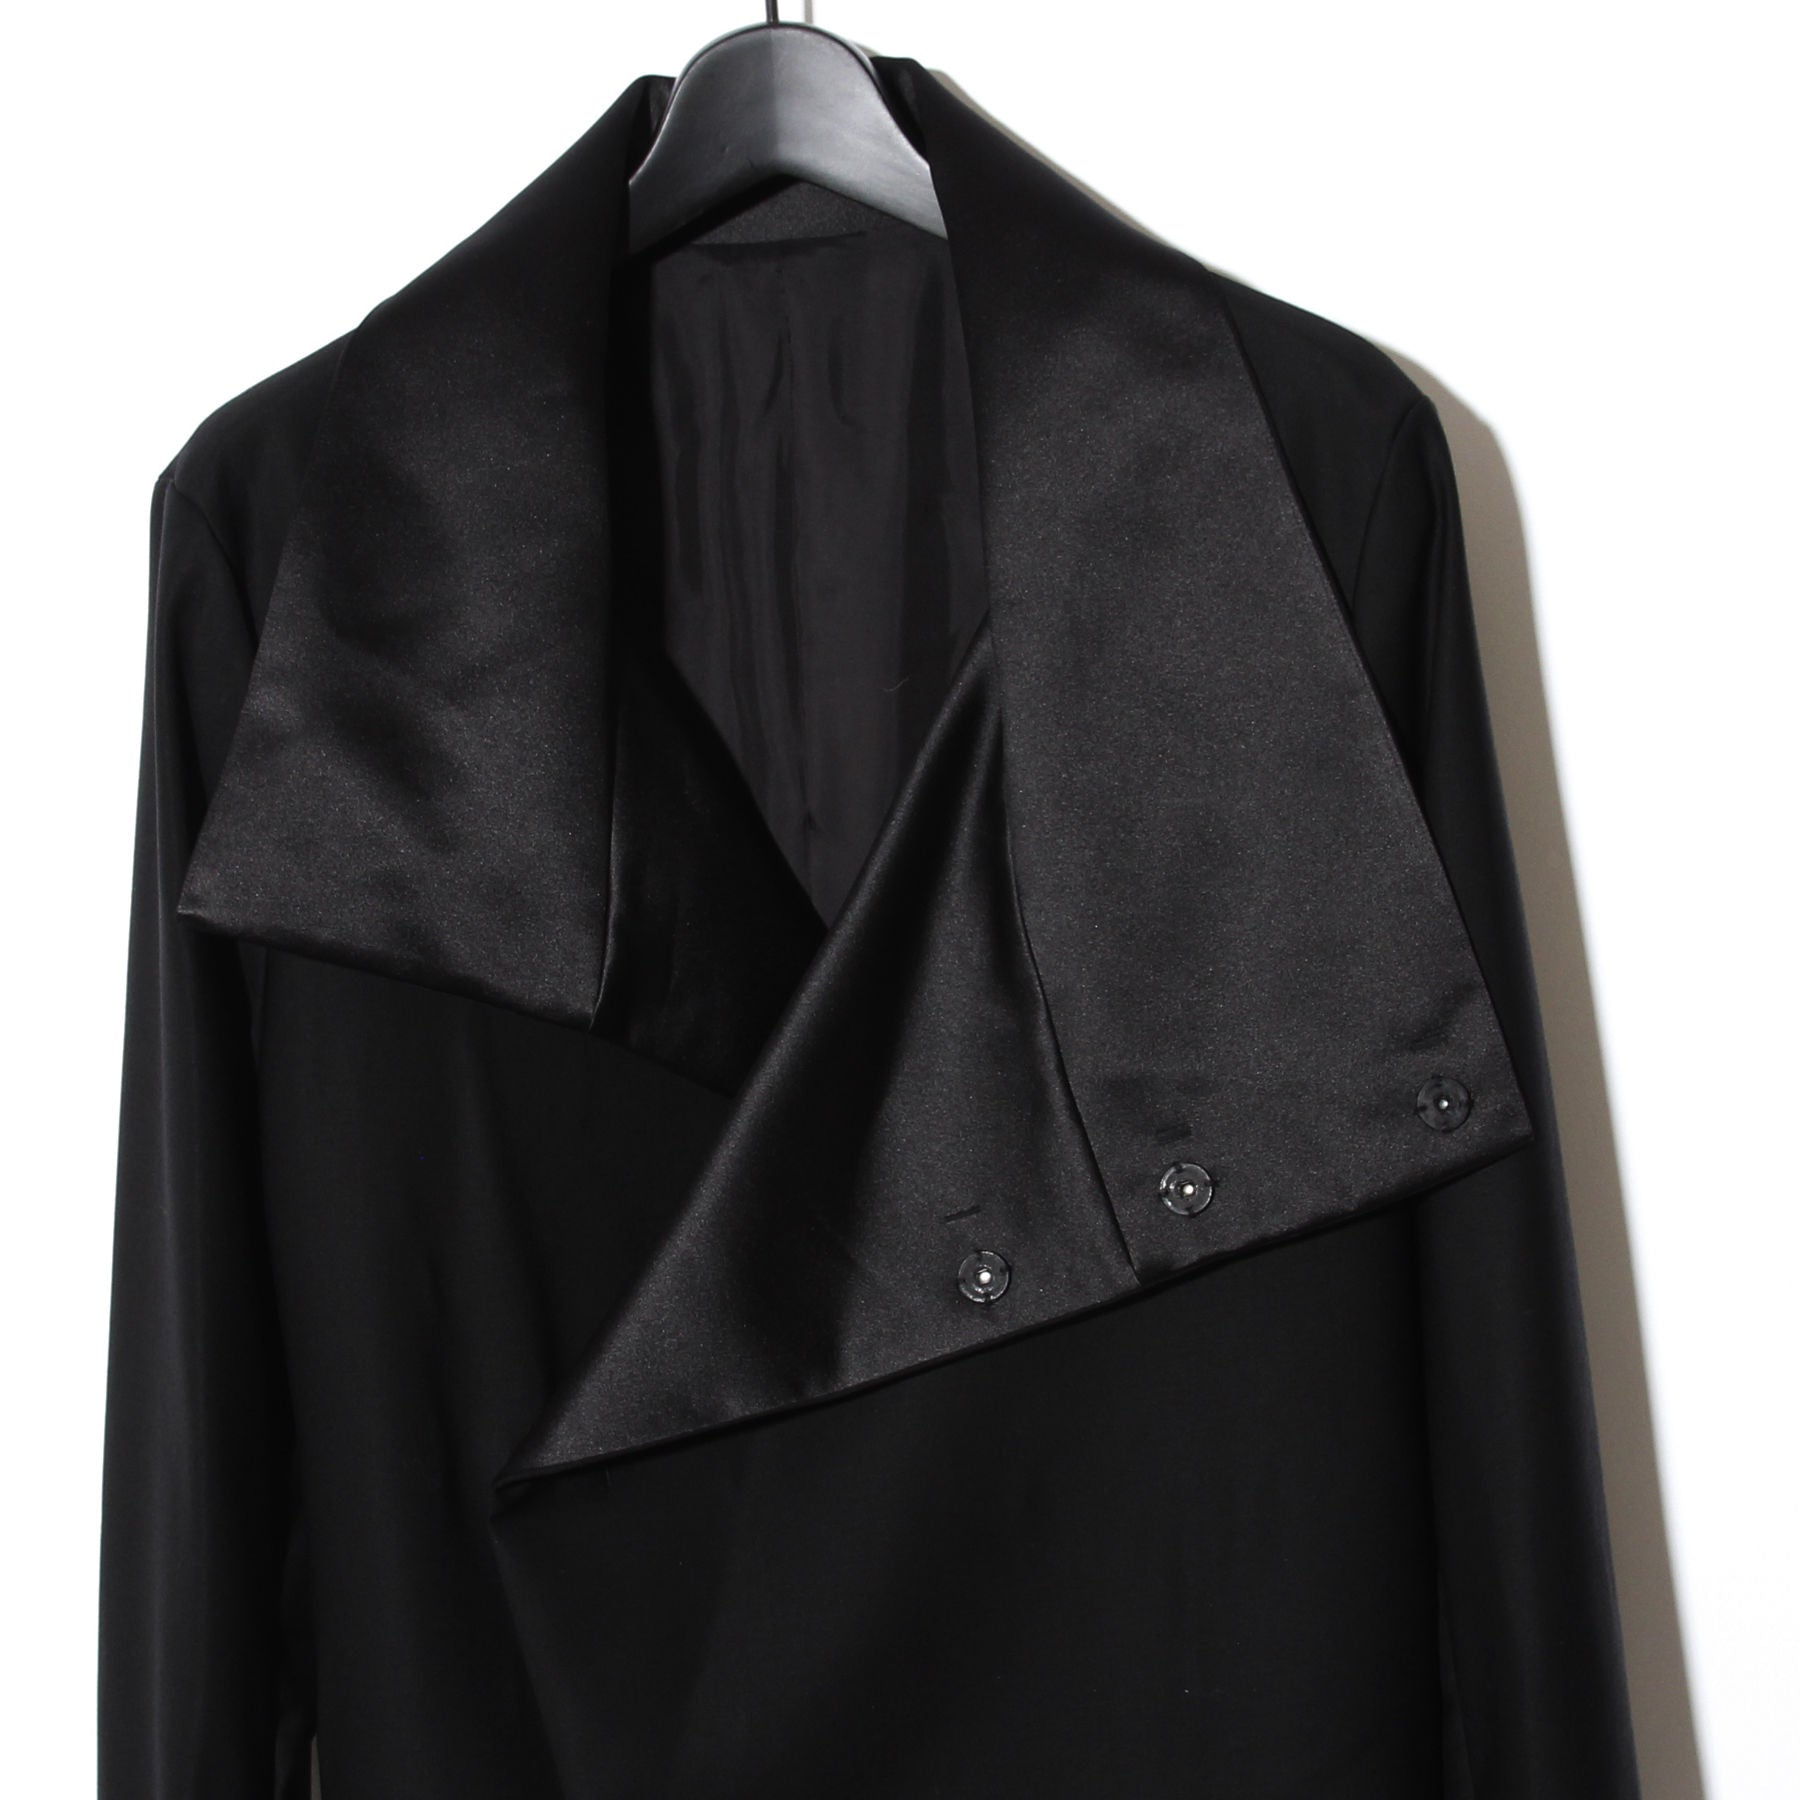 Black tuxedo cross High color wrap Coat / BLACK